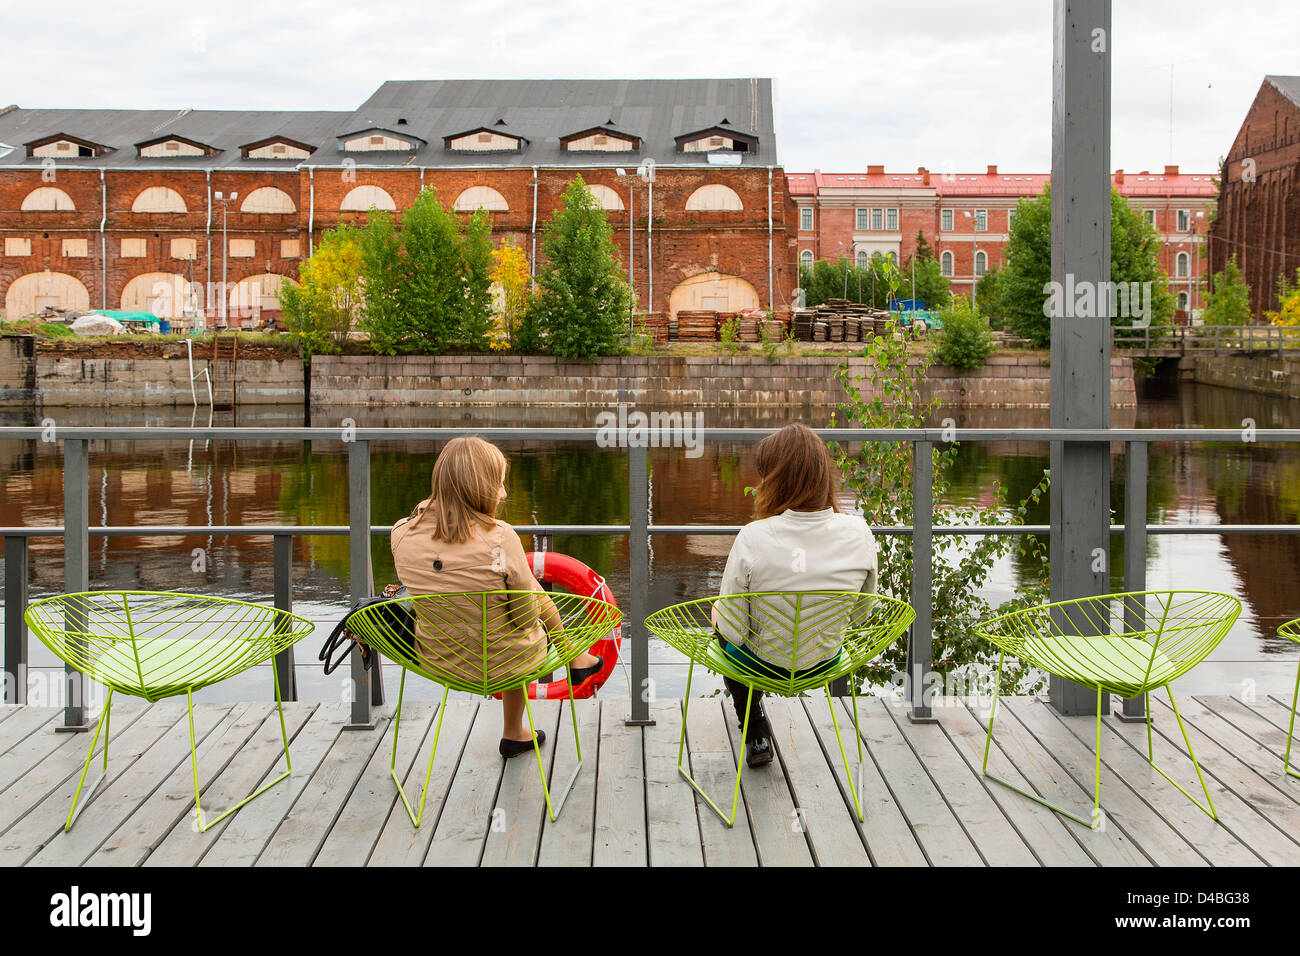 St. Petersburg, New Holland Island - Stock Image